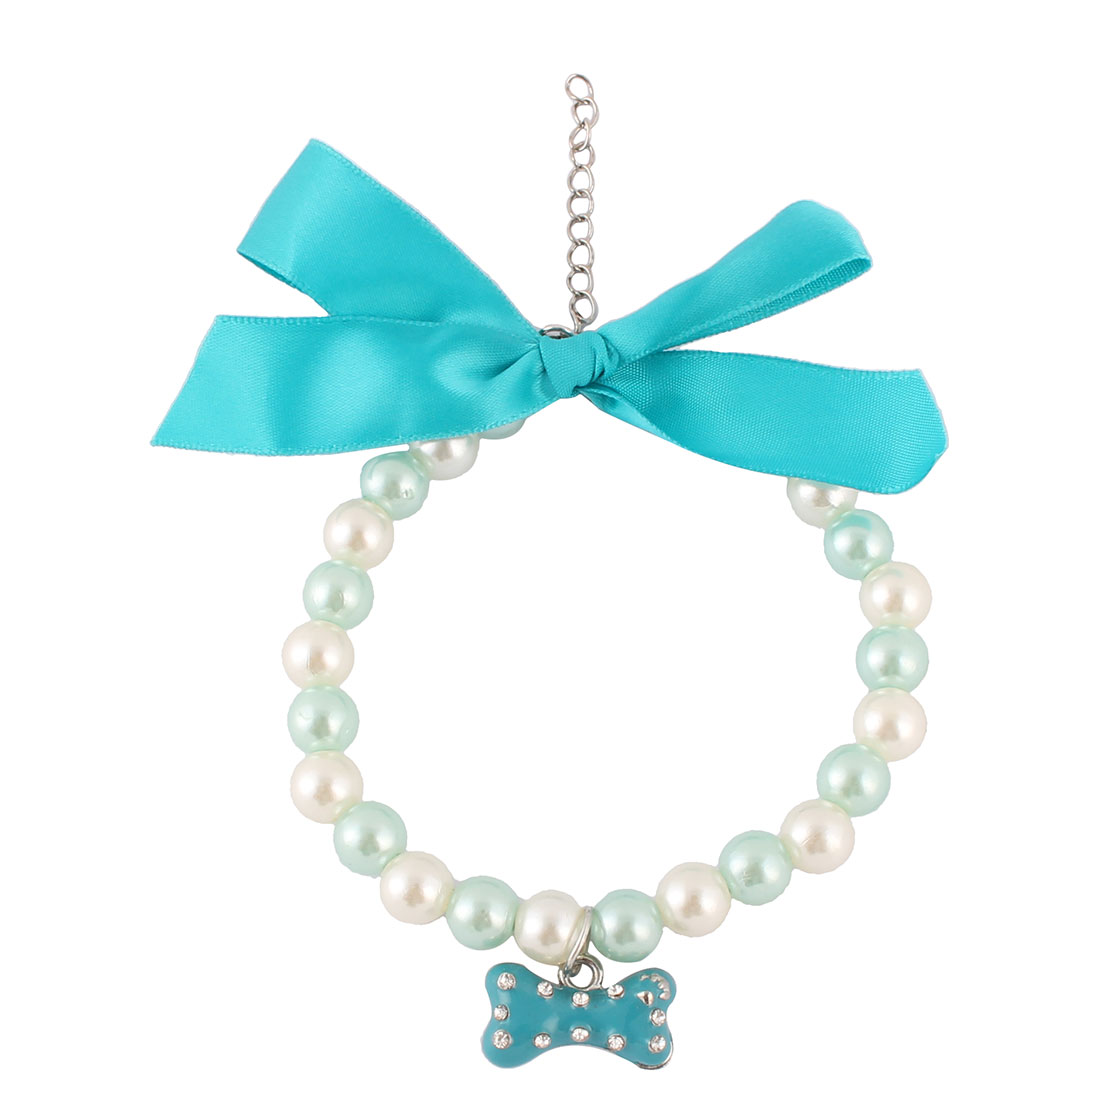 Unique Bargains Outdoor Party Plastic Round Beads Bone Charm Adjustable Clasp Pet Necklace Blue